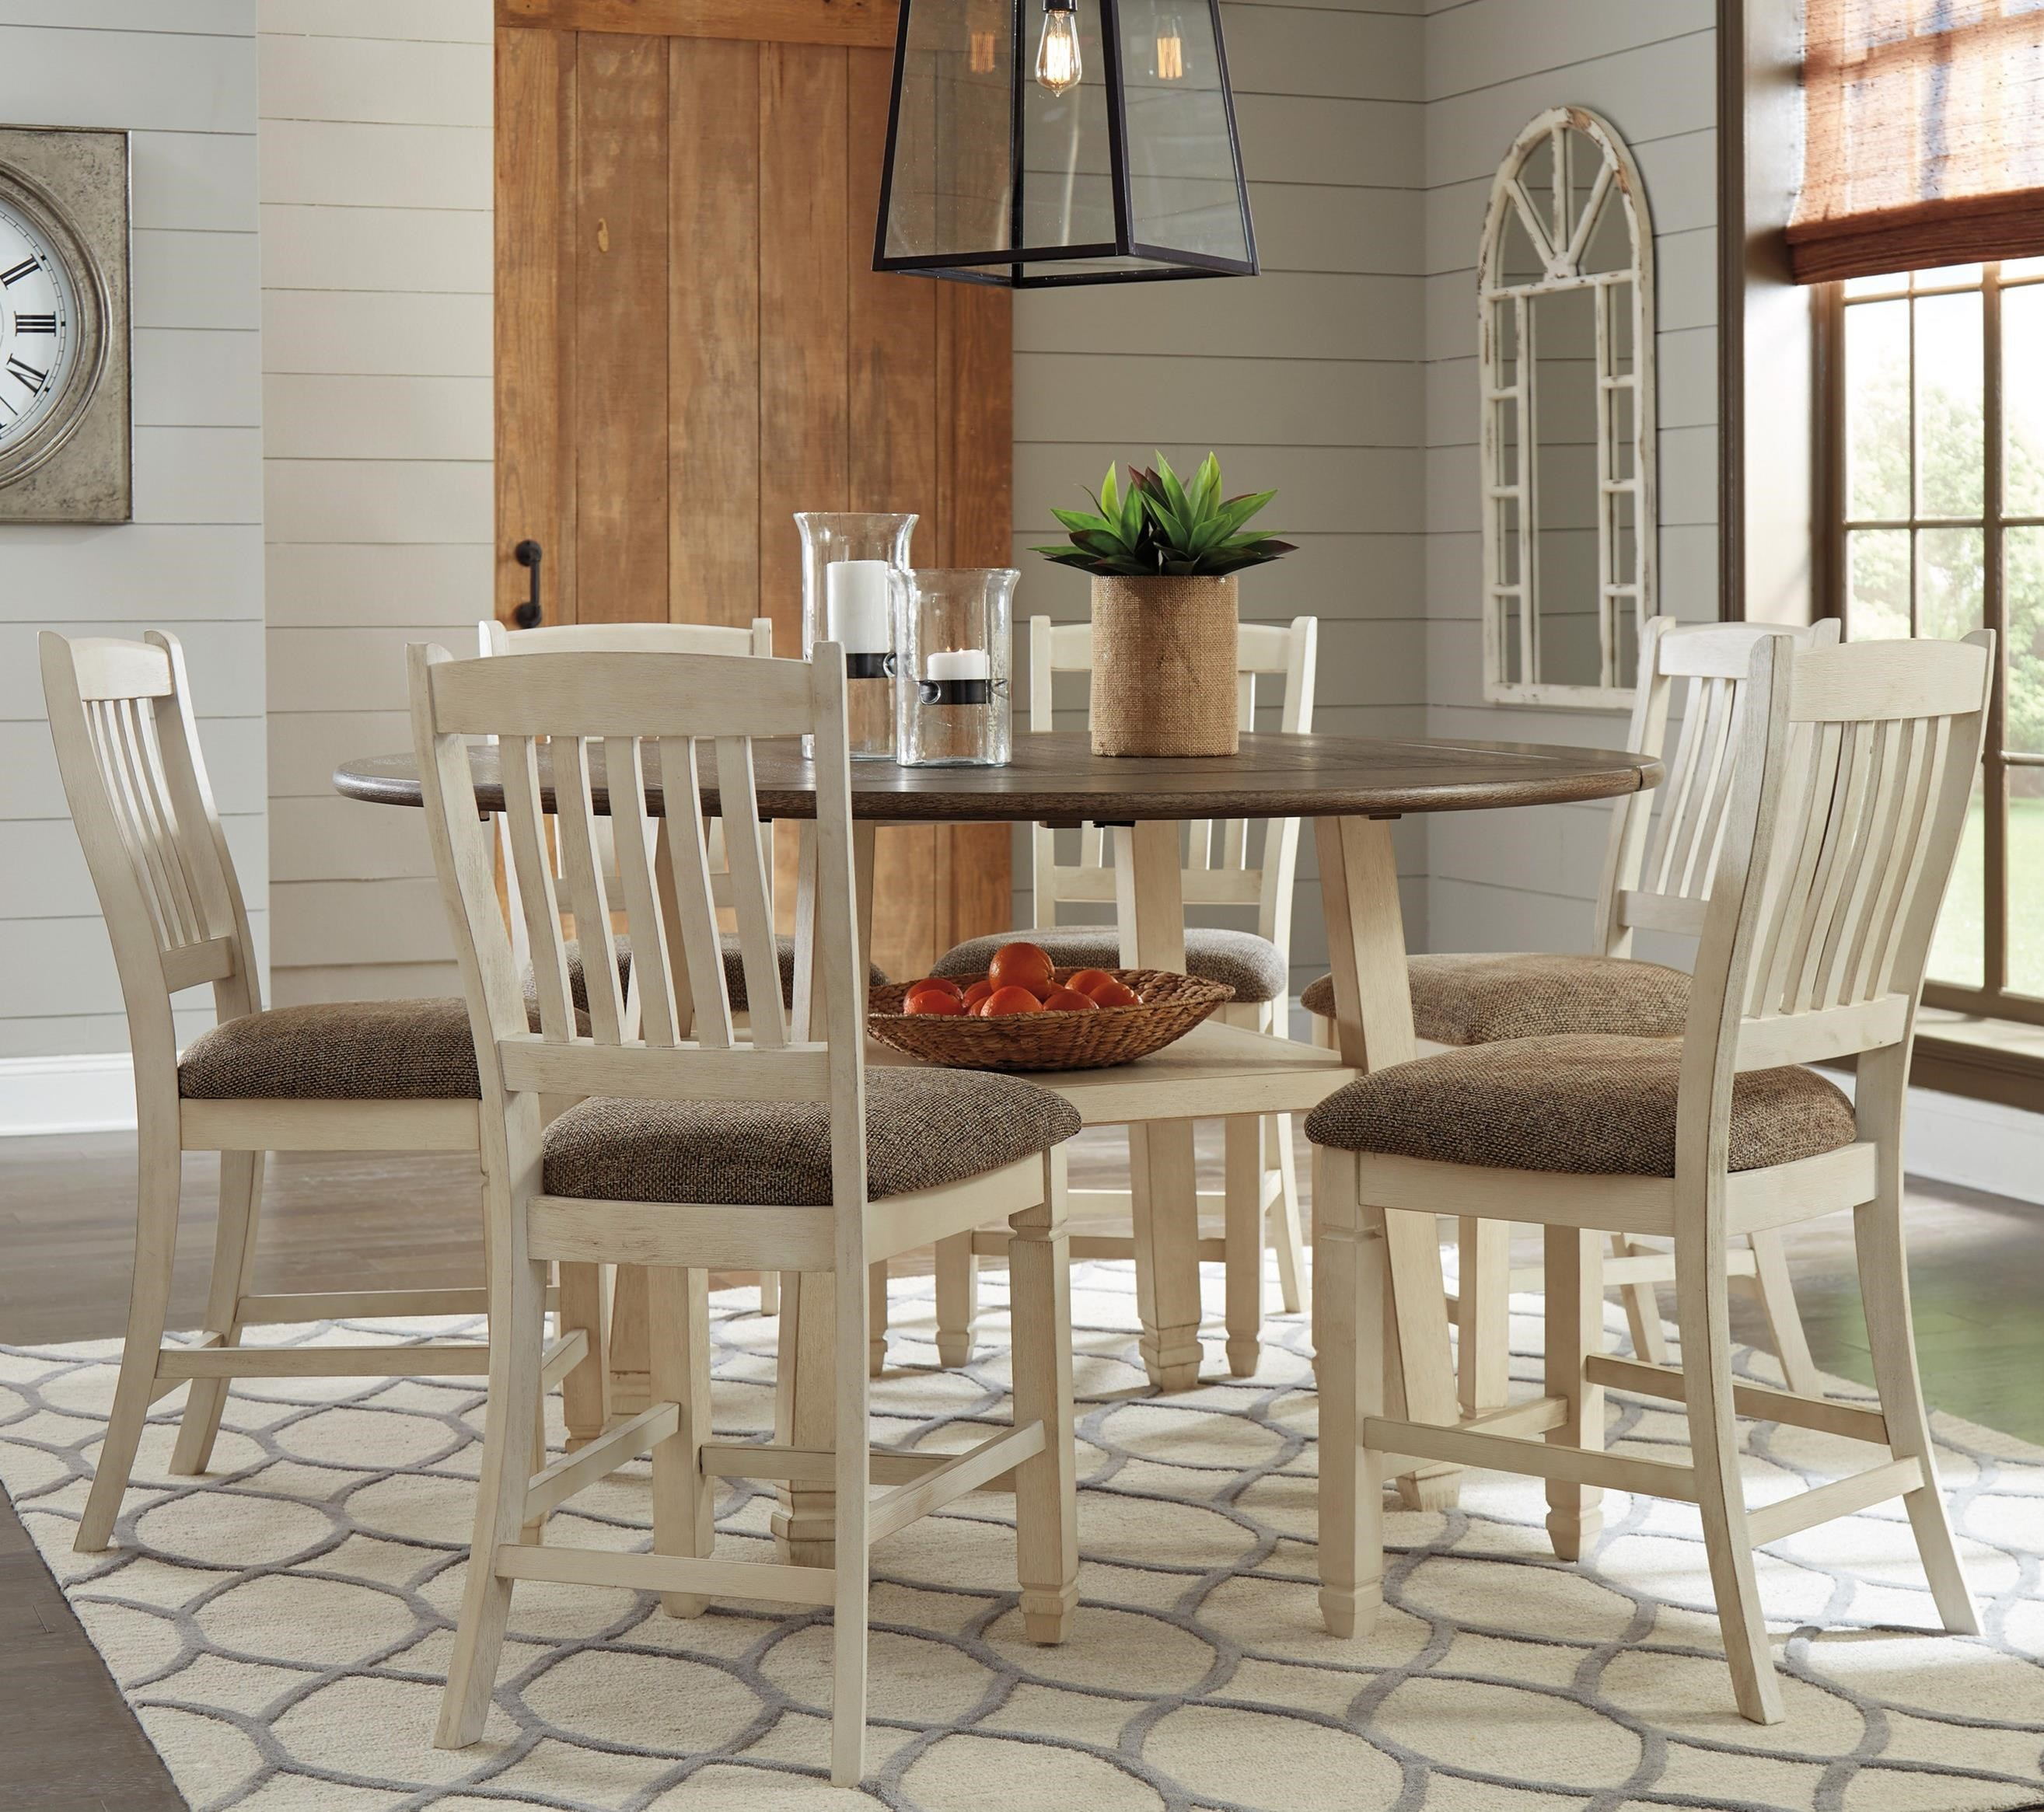 Bolanburg 7-Piece Round Drop Leaf Counter Table Set by Signature Design by Ashley at Beck's Furniture